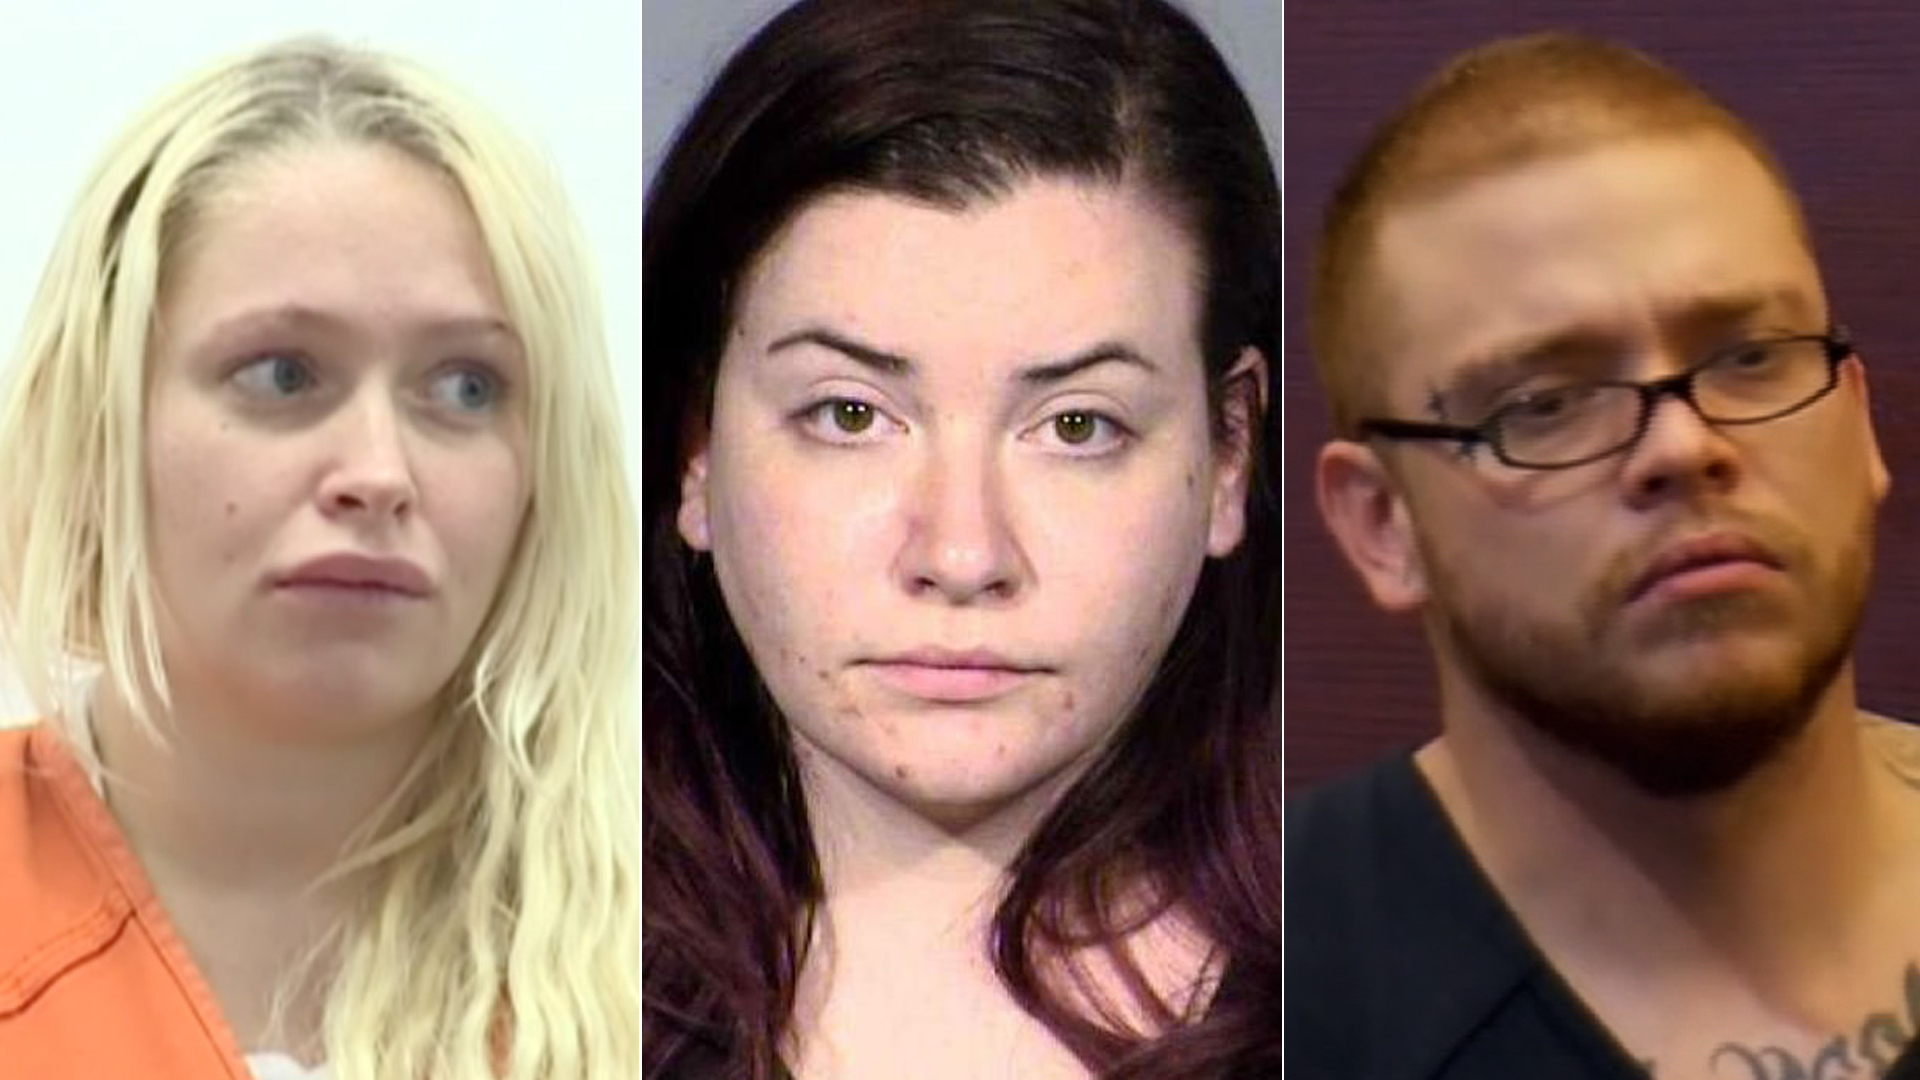 From left: Kelsey Turner is seen in a San Joaquin County courtroom on April 9, 2019, in an image from KTXL; Diana Pena is seen in an booking photo obtained by CNN; and Jon Kennison appears in a Las Vegas courtroom on April 19, 2019, in an image from KTNV via CNN.